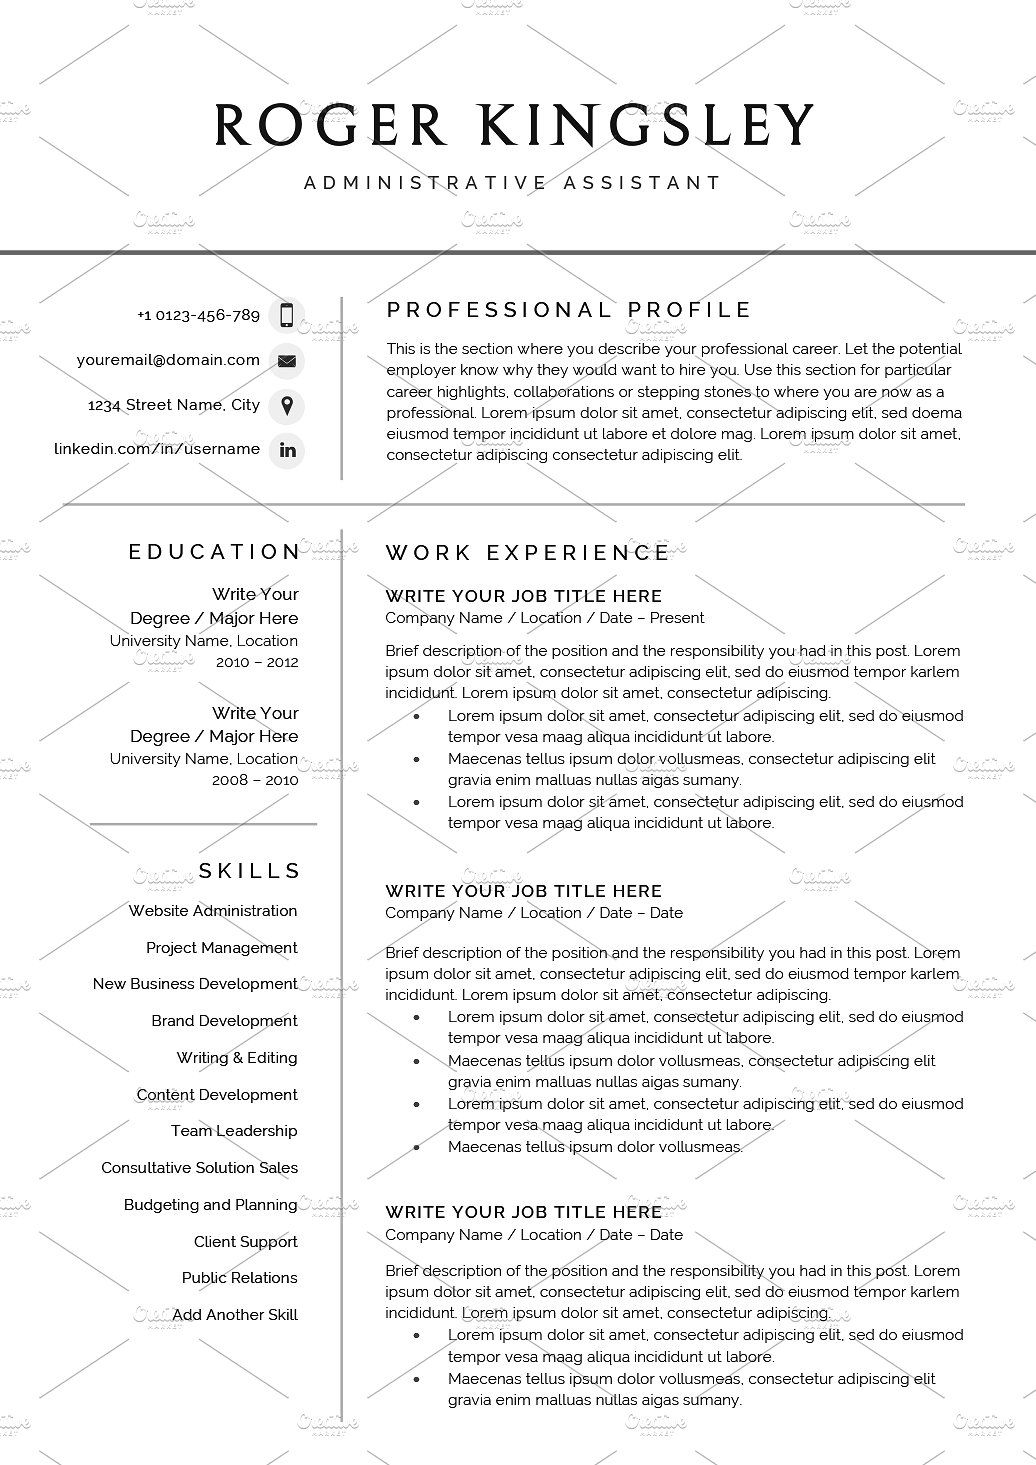 Resume/CV The Roger (With images) Resume cv, Word 2007